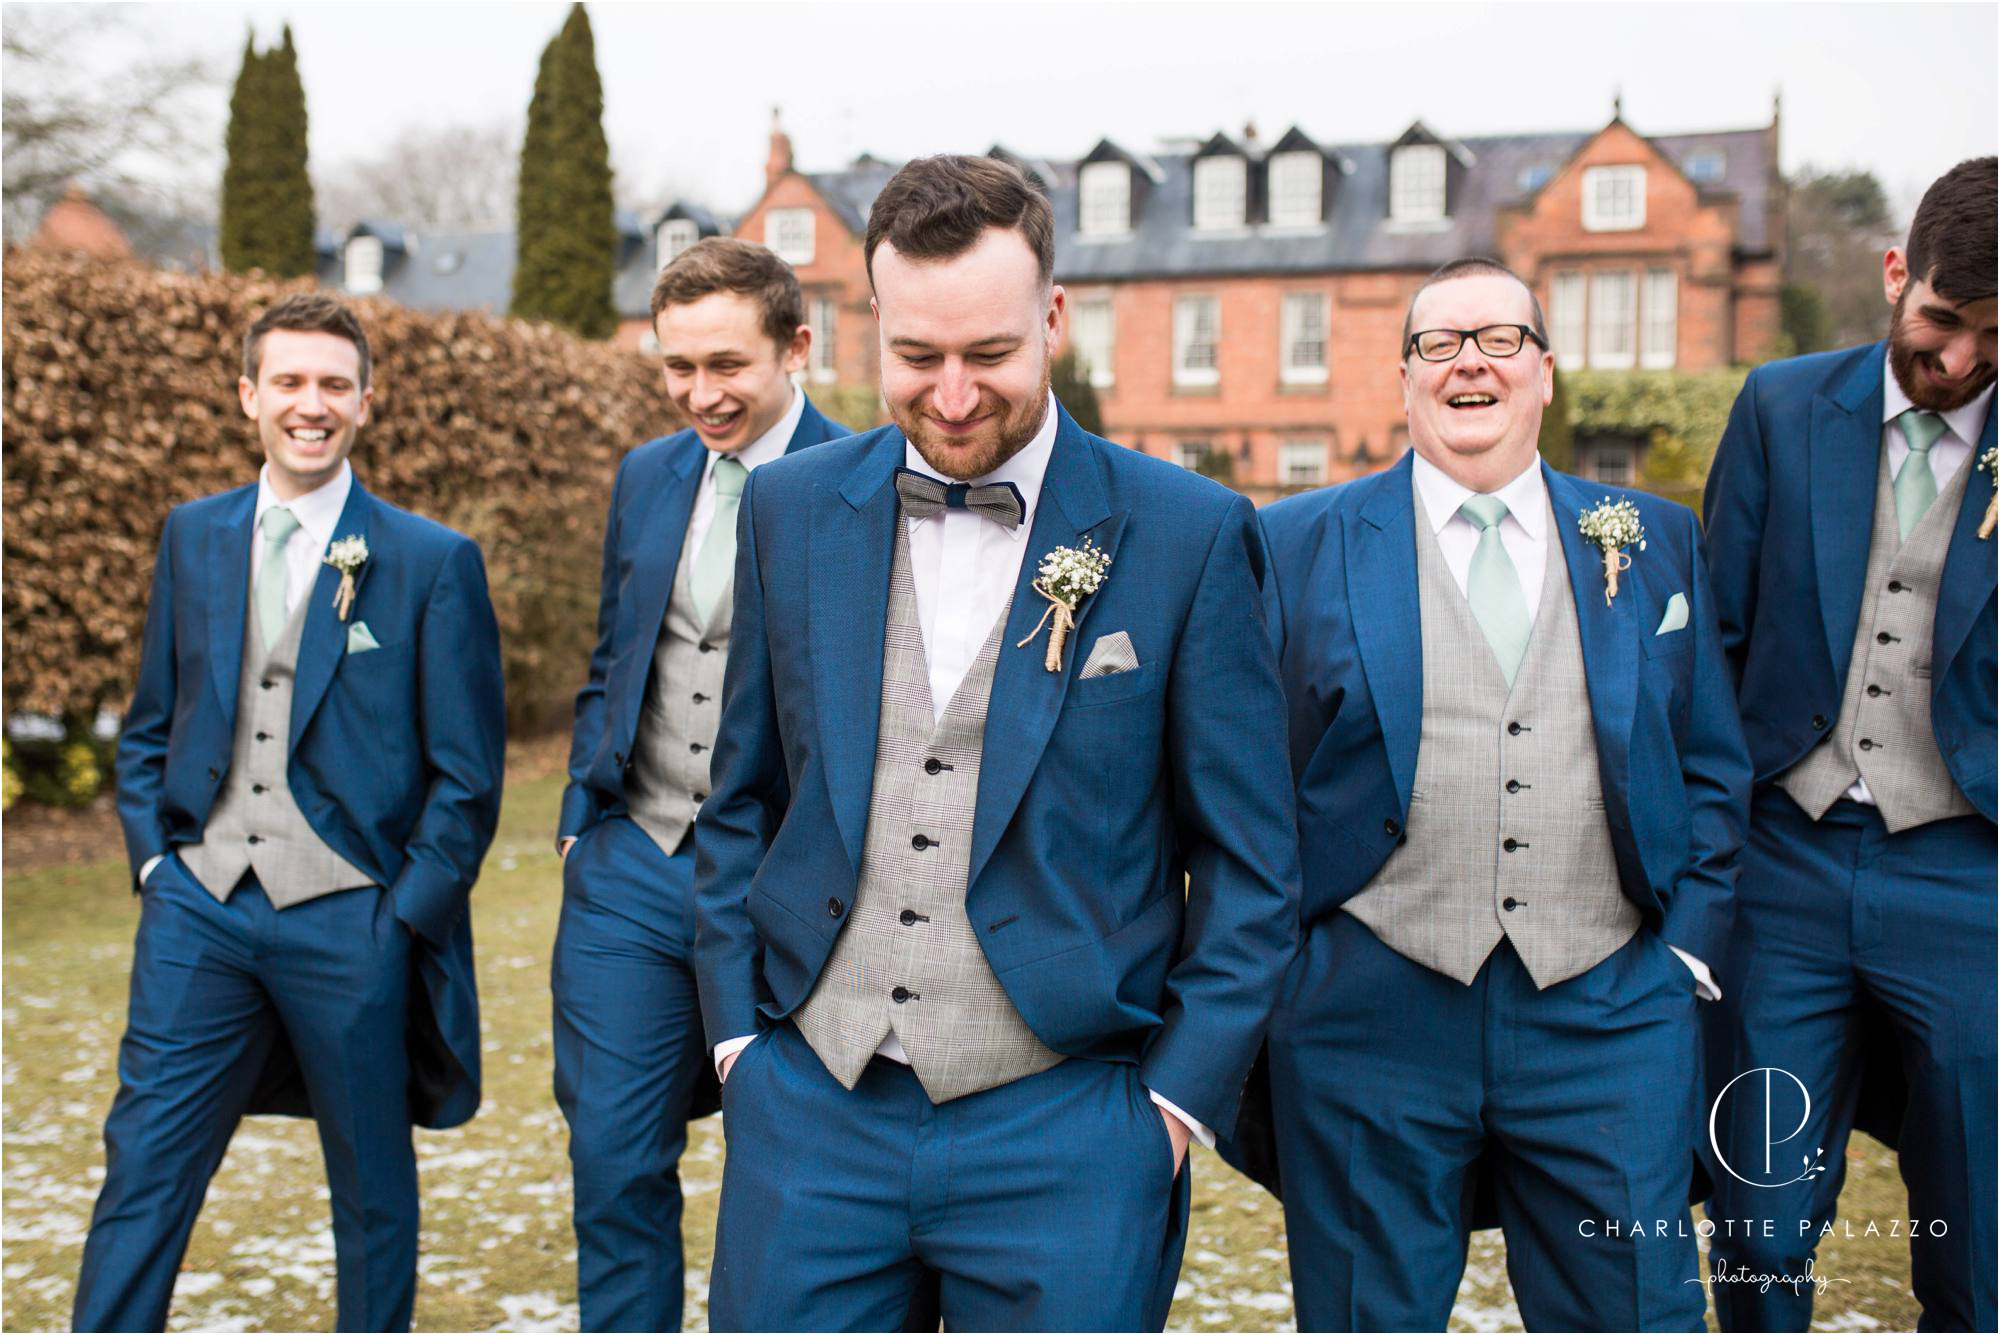 Kirst_Peter_Snowy_Nunsmere_Hall_Winter_Wedding_Cheshire_Photographer_0007.jpg